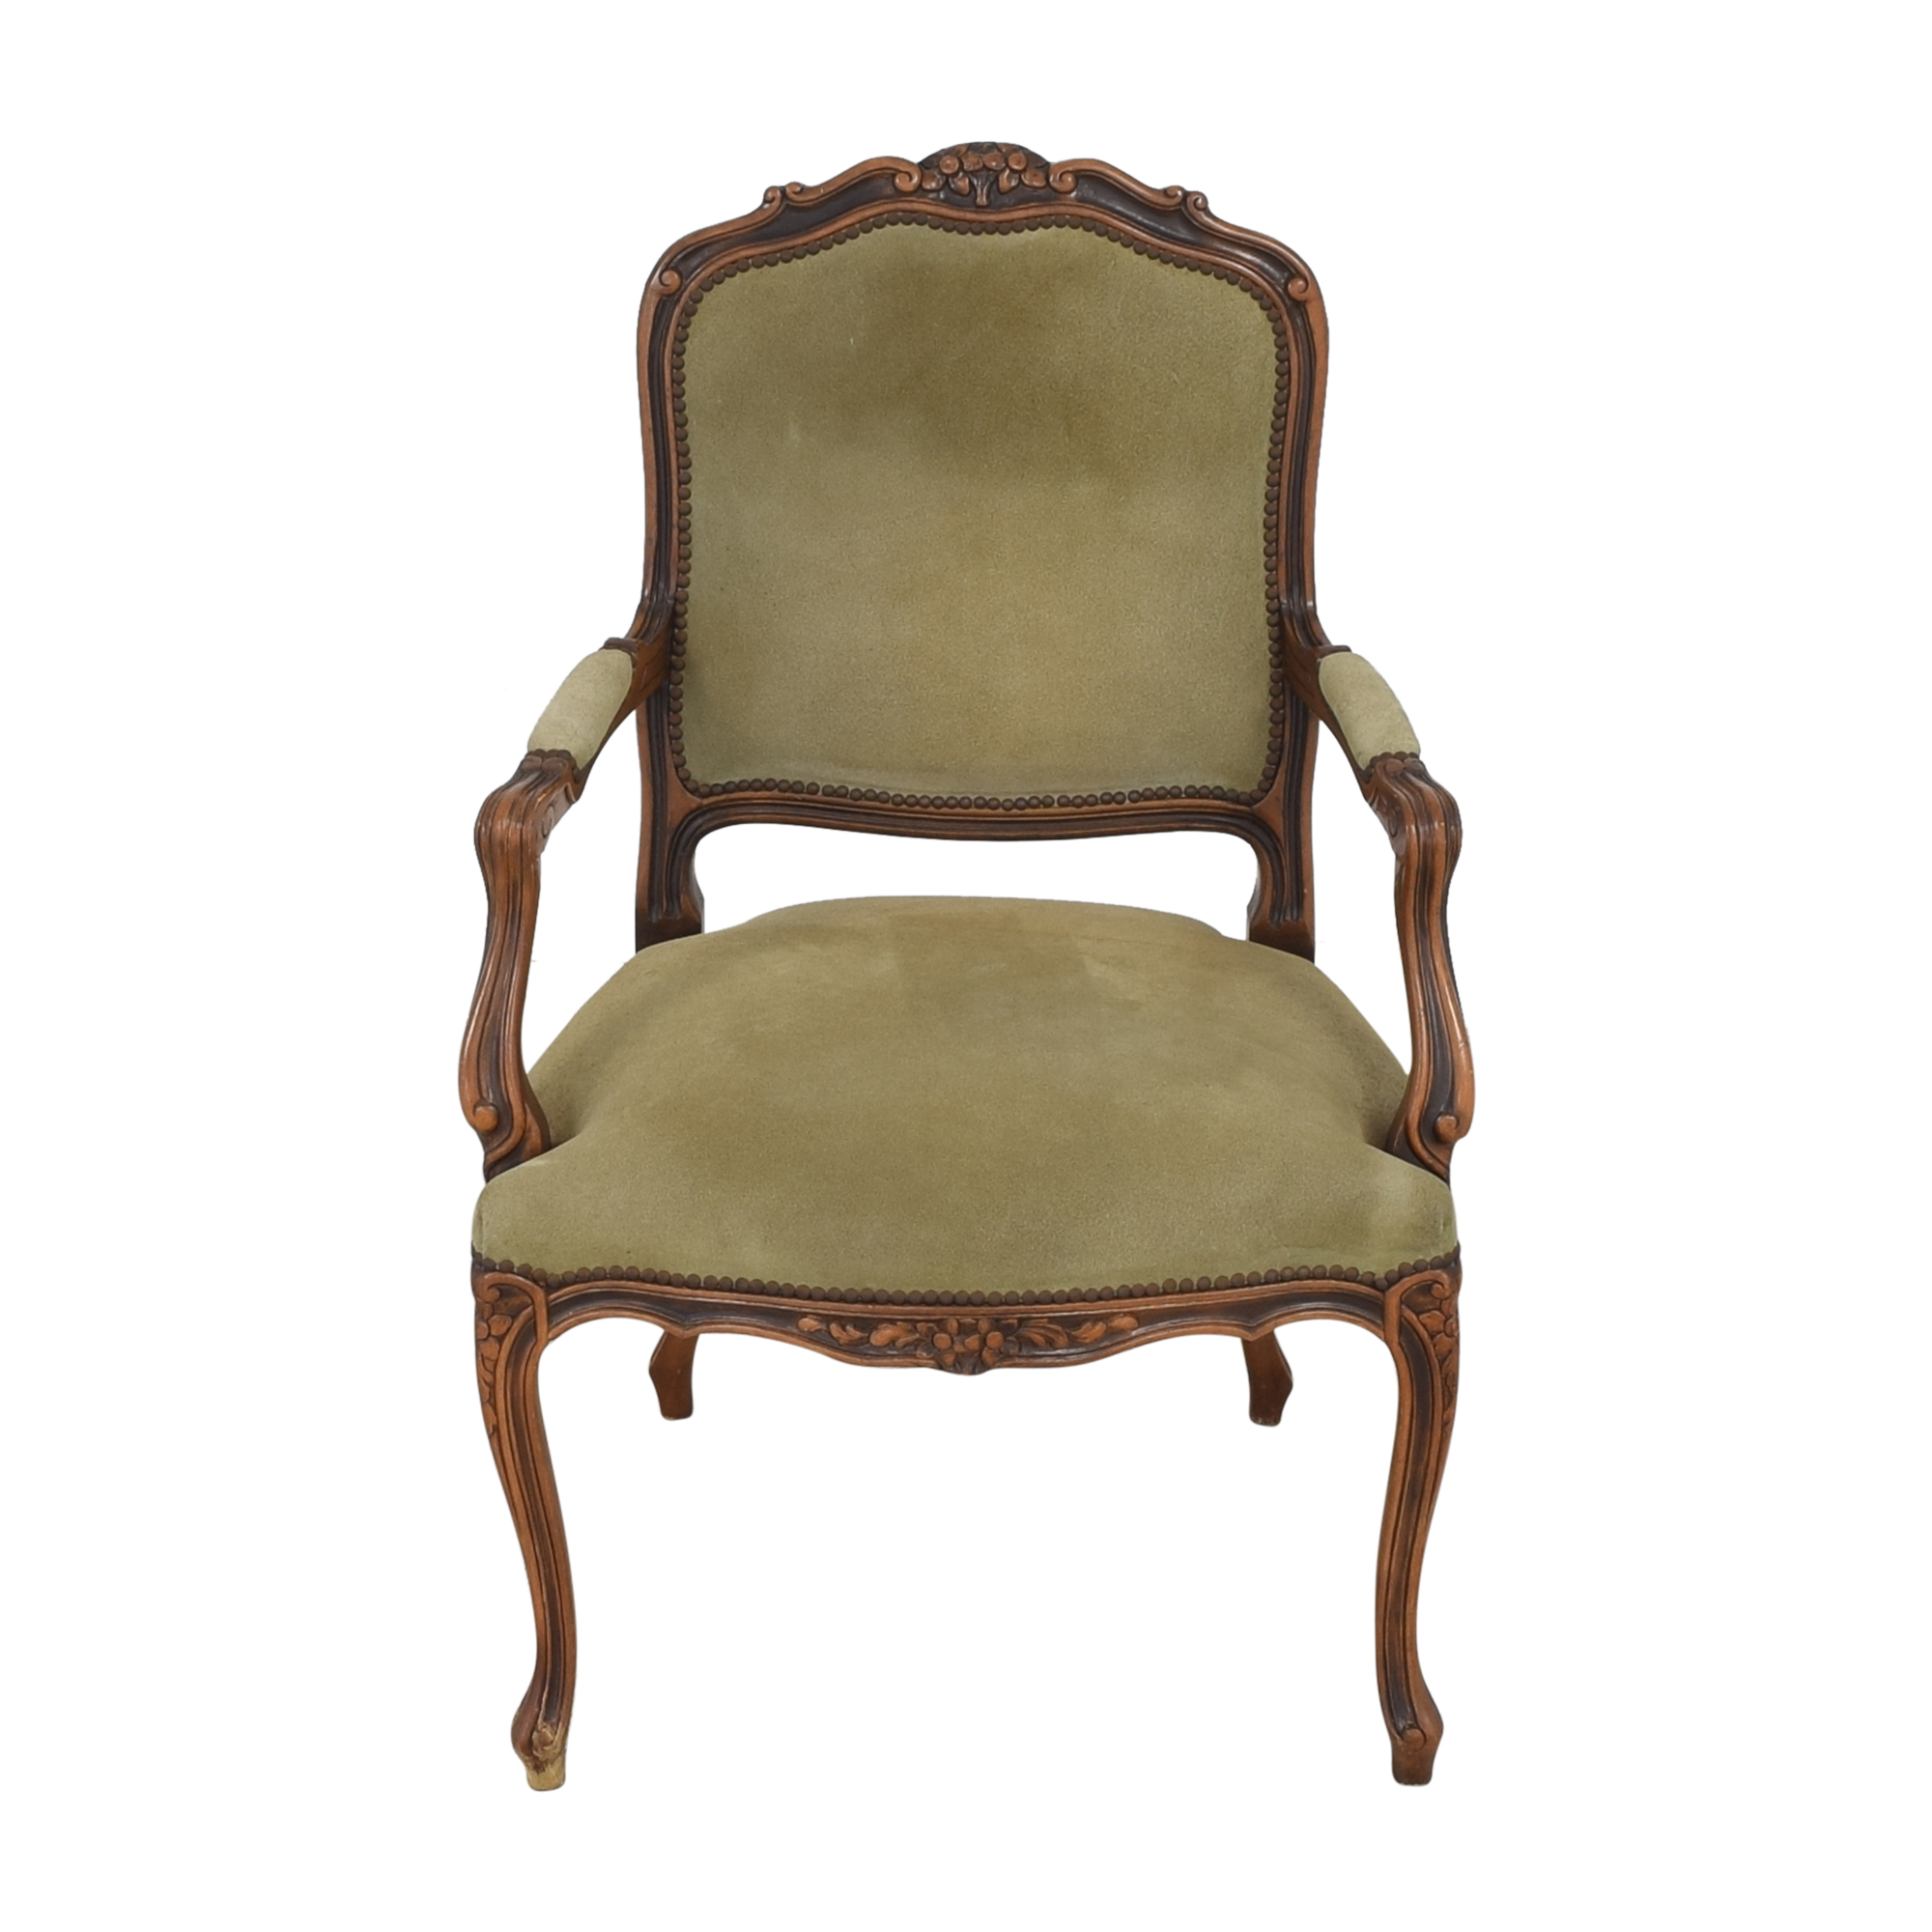 buy Chateau d'Ax Chateau d'Ax Louis XV Style Armchair online